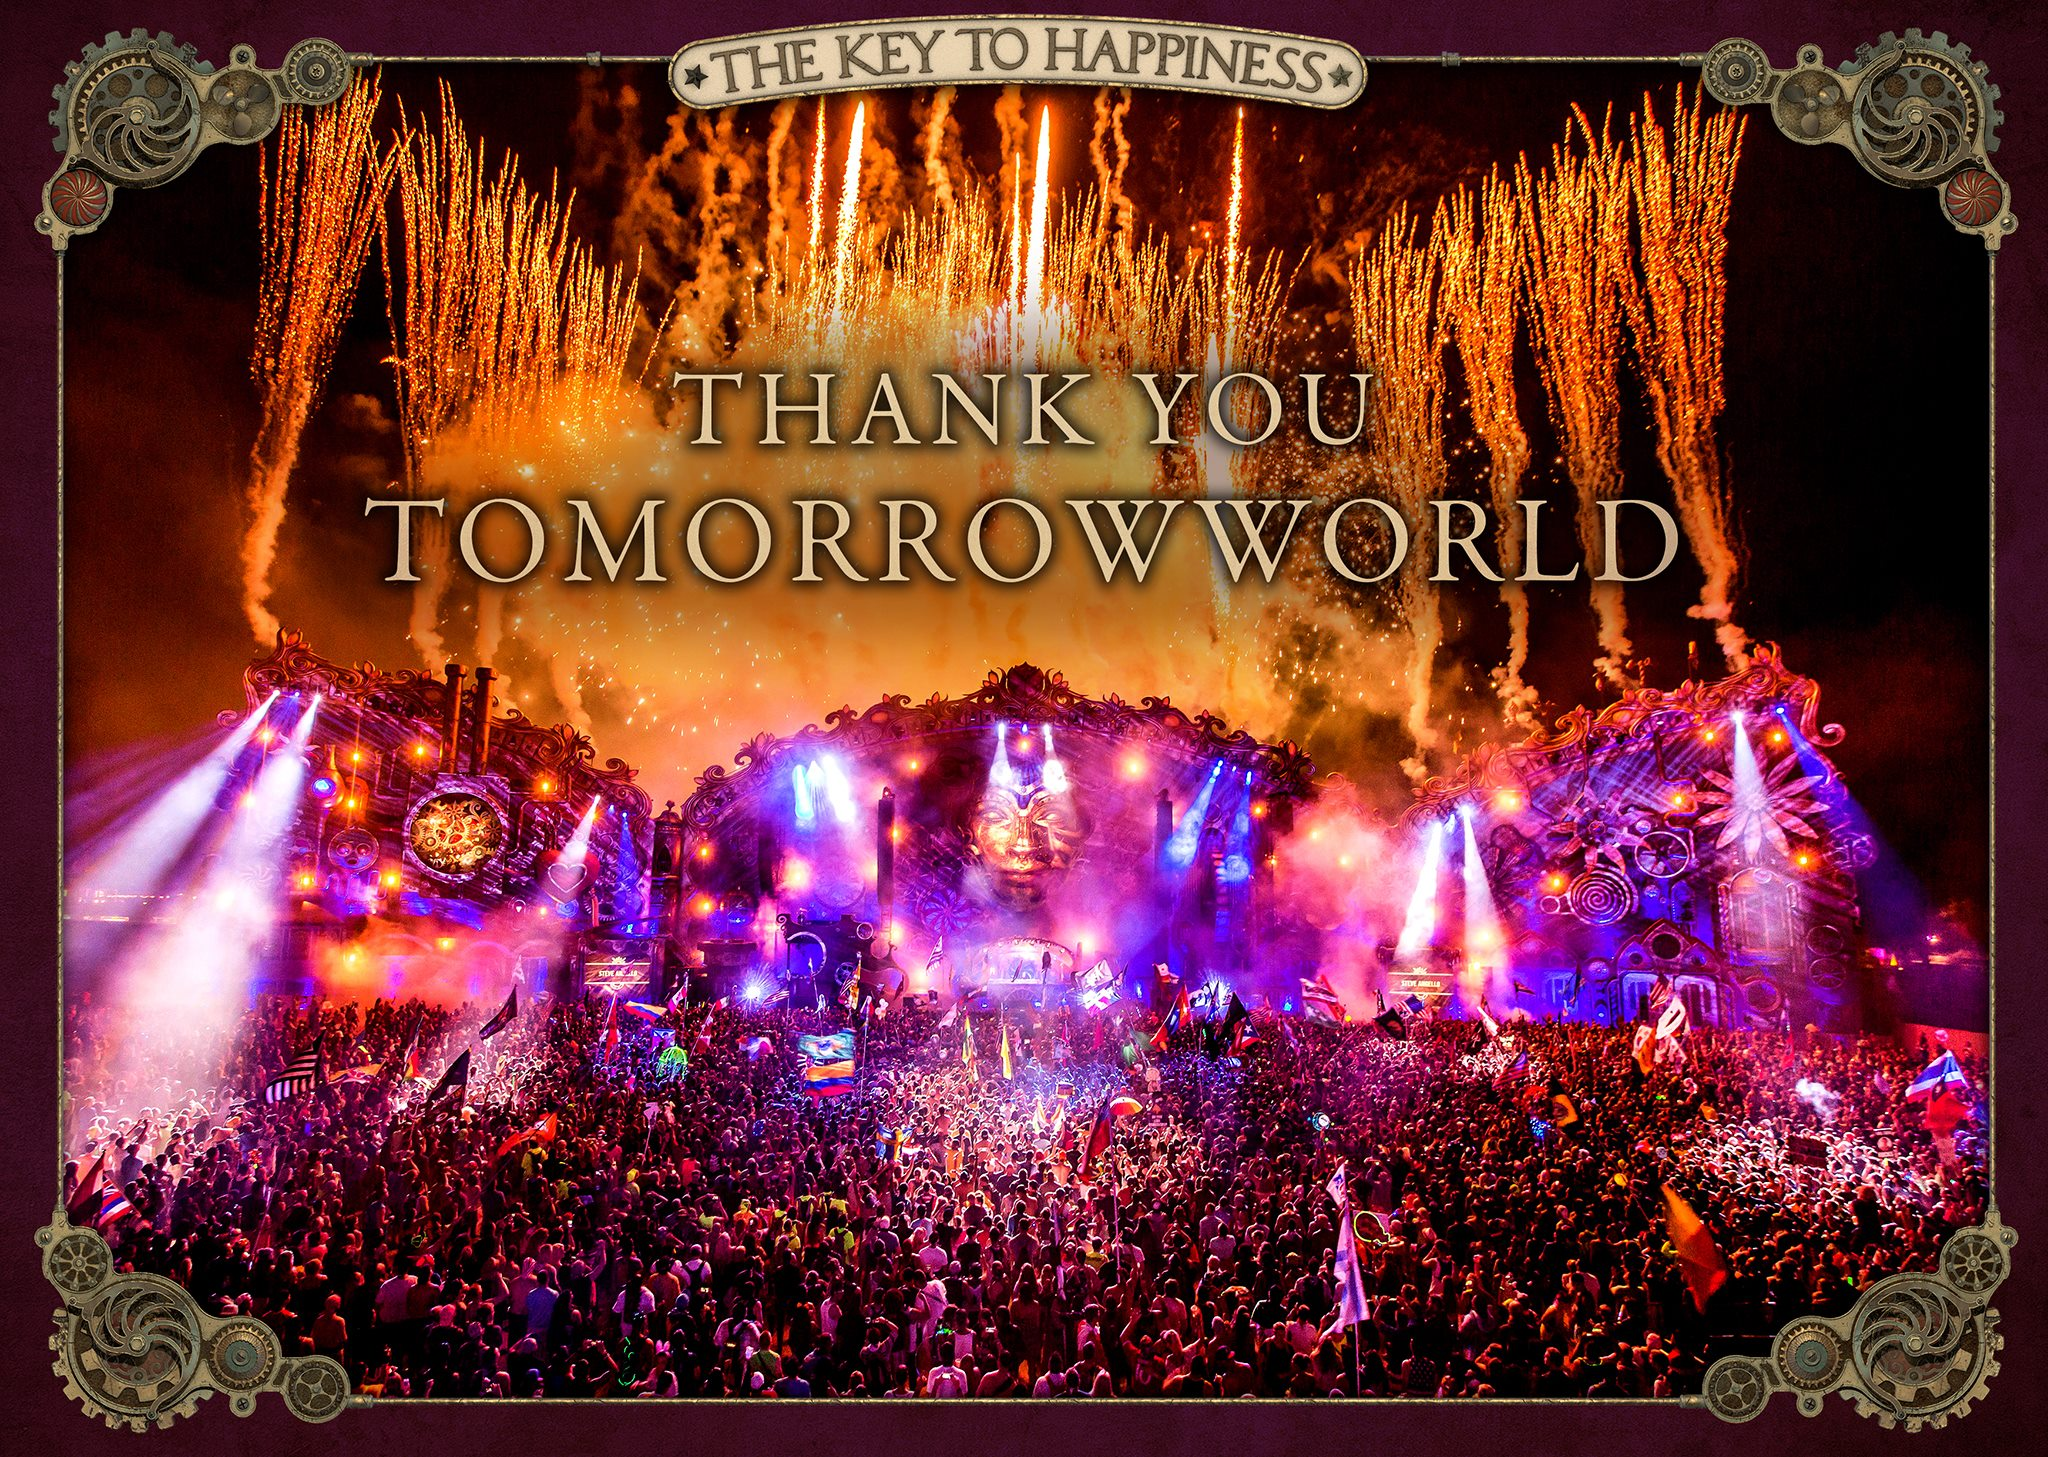 TomorrowWorld 2015 Thank you